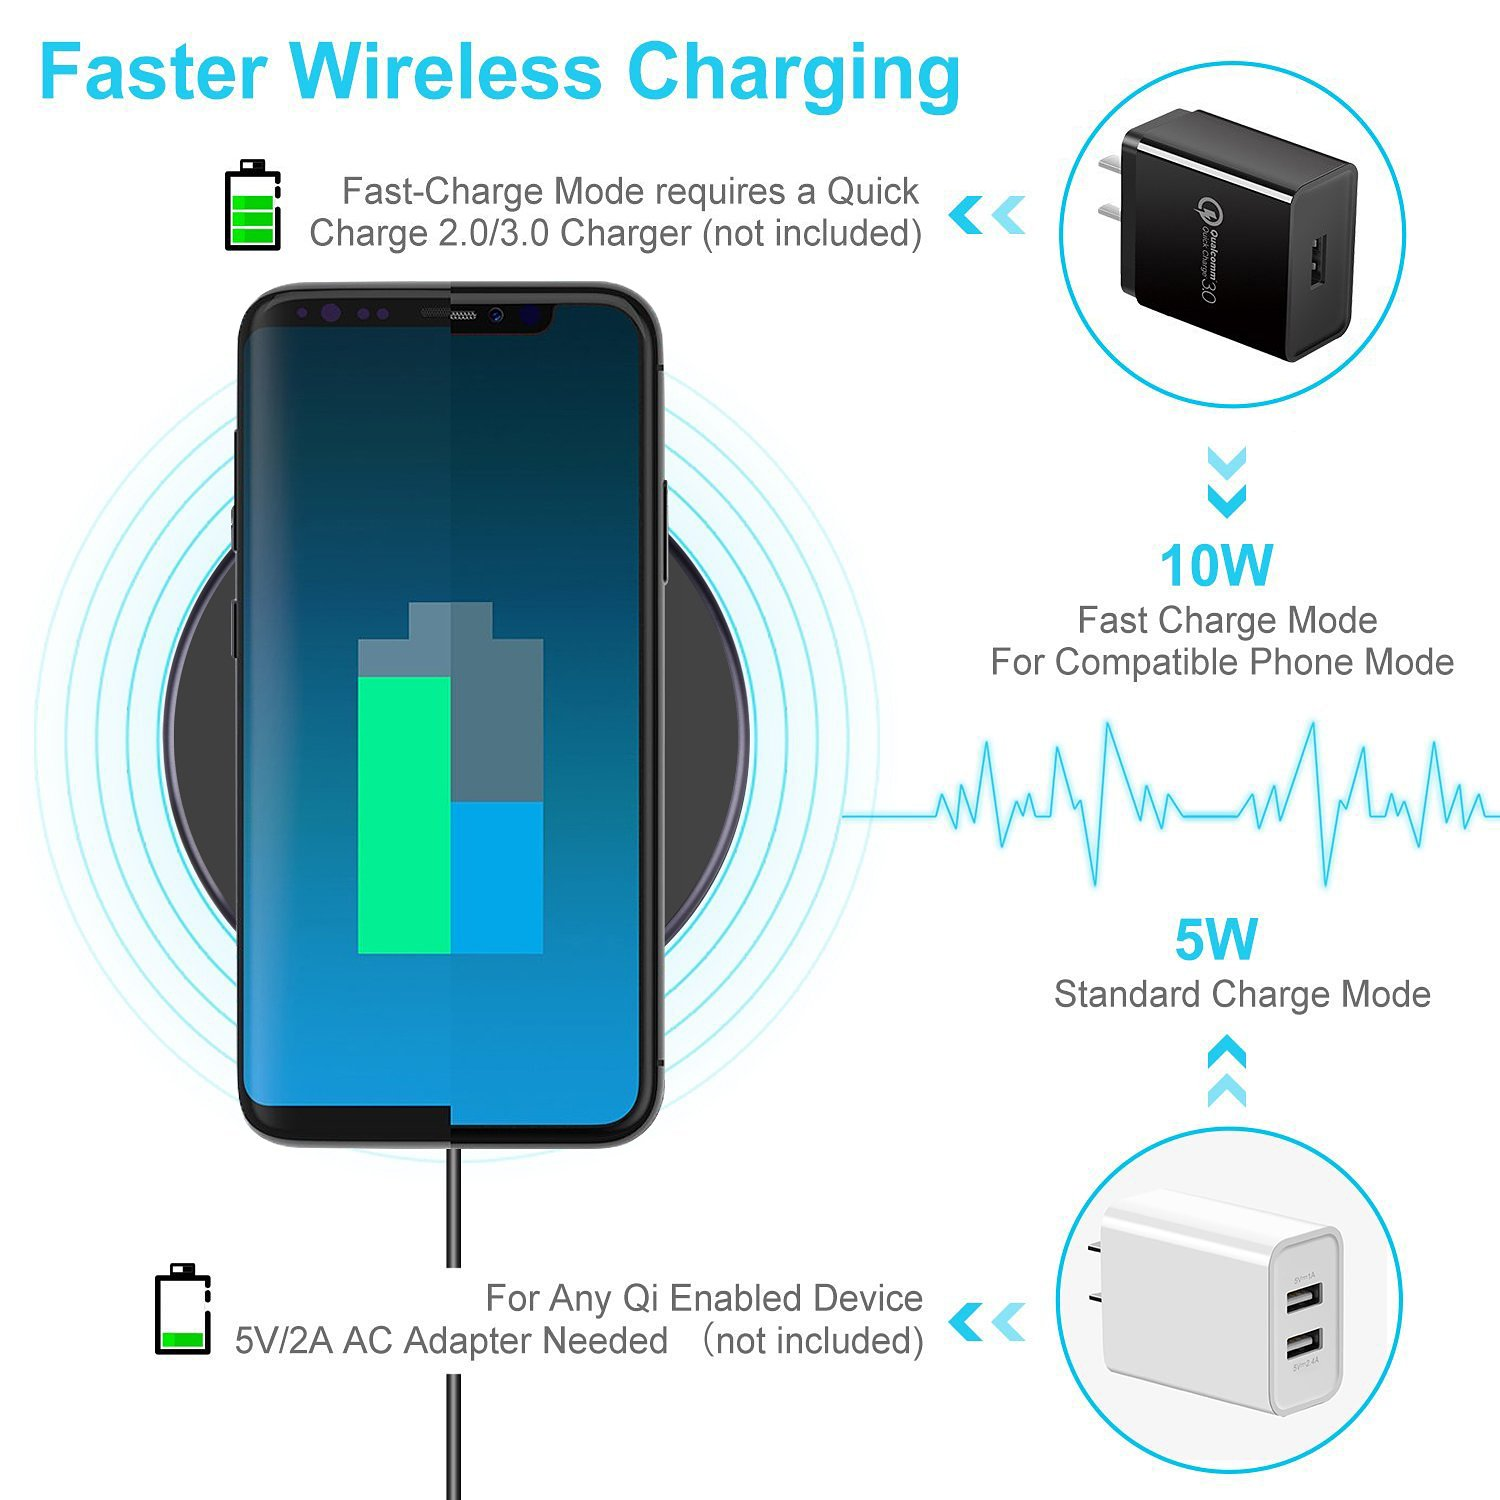 Te Rich Ultra Slim Standard Qi Wireless Charger For The Circuit Adapter Charge Mobile Phones Phone Battery Iphone X 8 Plus Samsung S 9 S9 Fast Charging Pad Galaxy Note 5